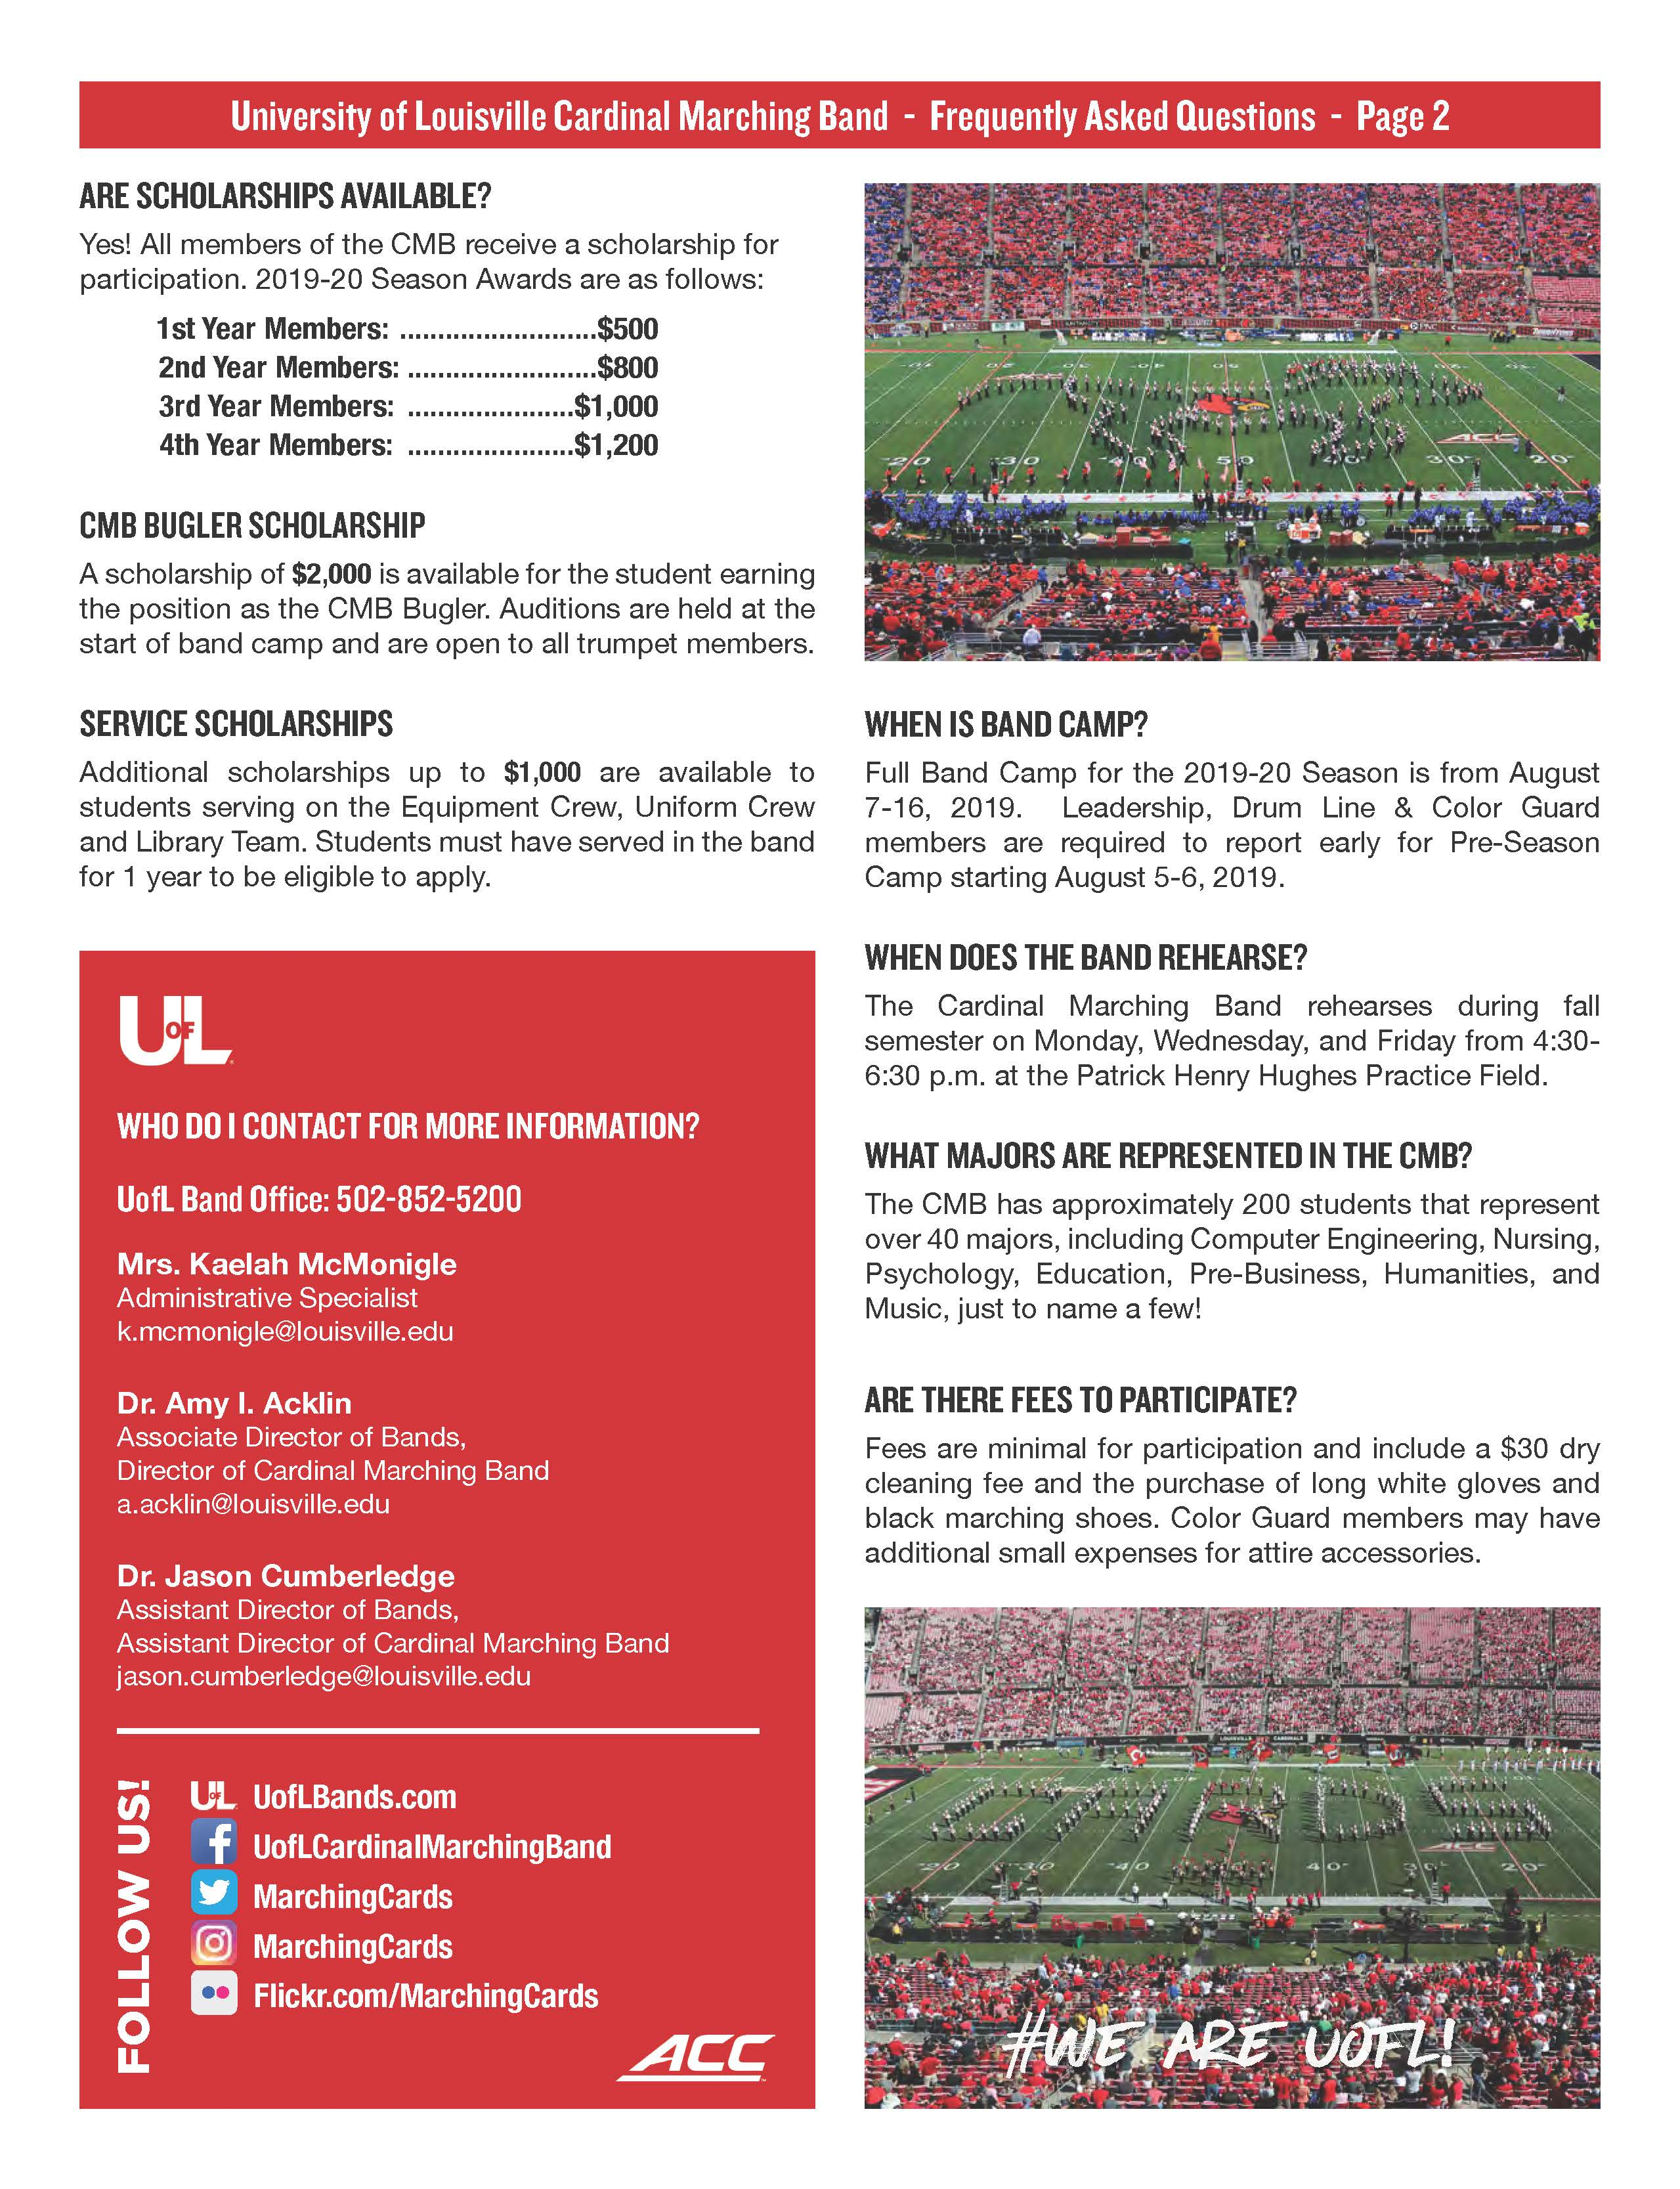 Marching Cards | UofL Bands